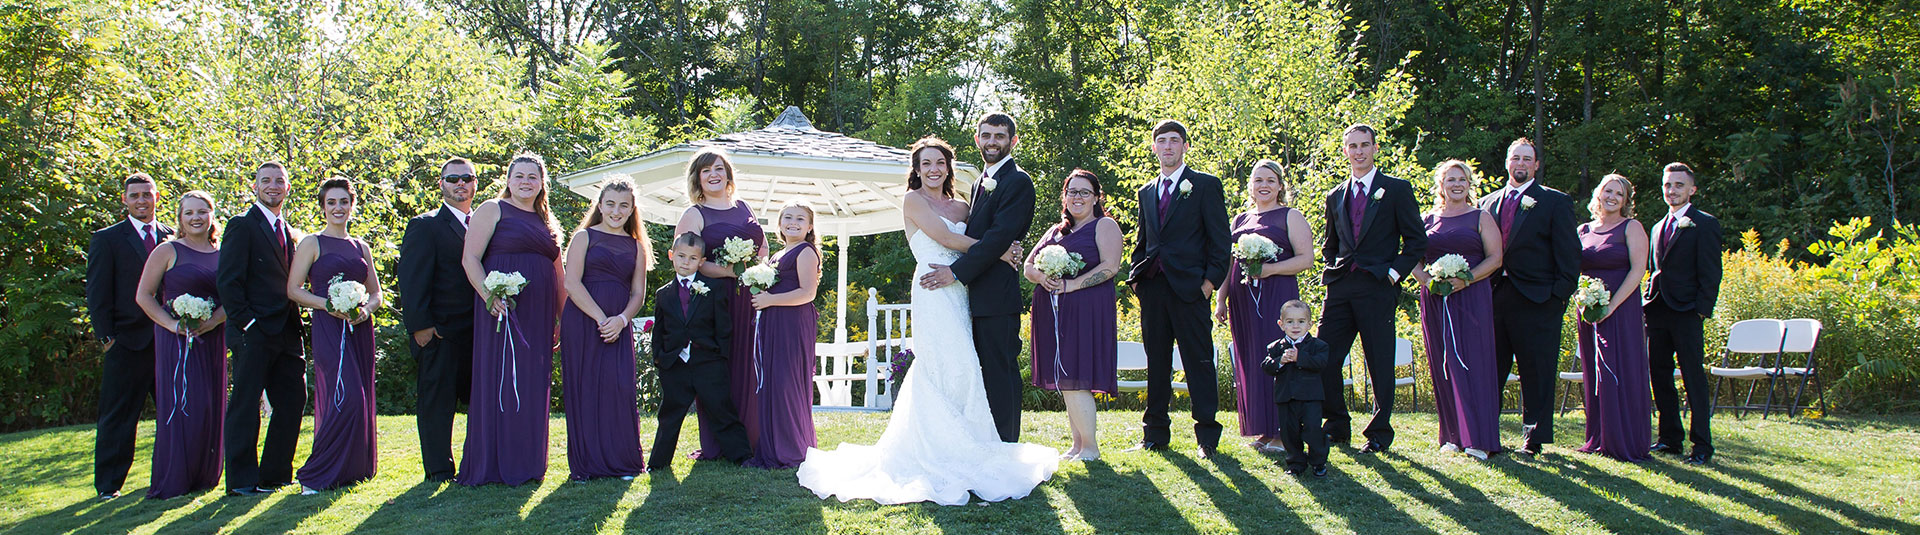 A wedding party poses in front of a gazebo at Catamount Country Club